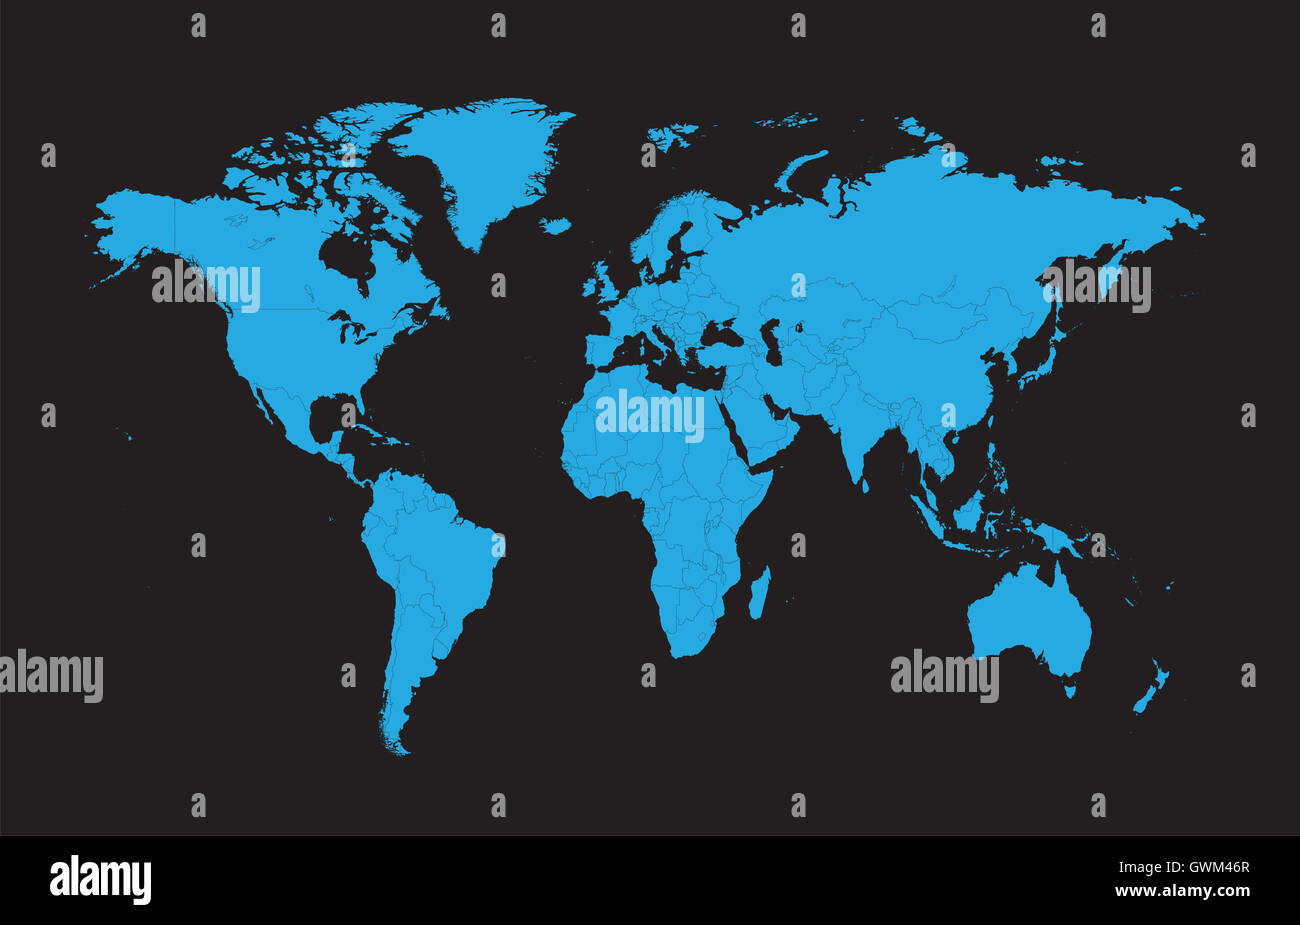 World Map Vector Flat With Borders Blue Color Stock Photo - World map in blue color